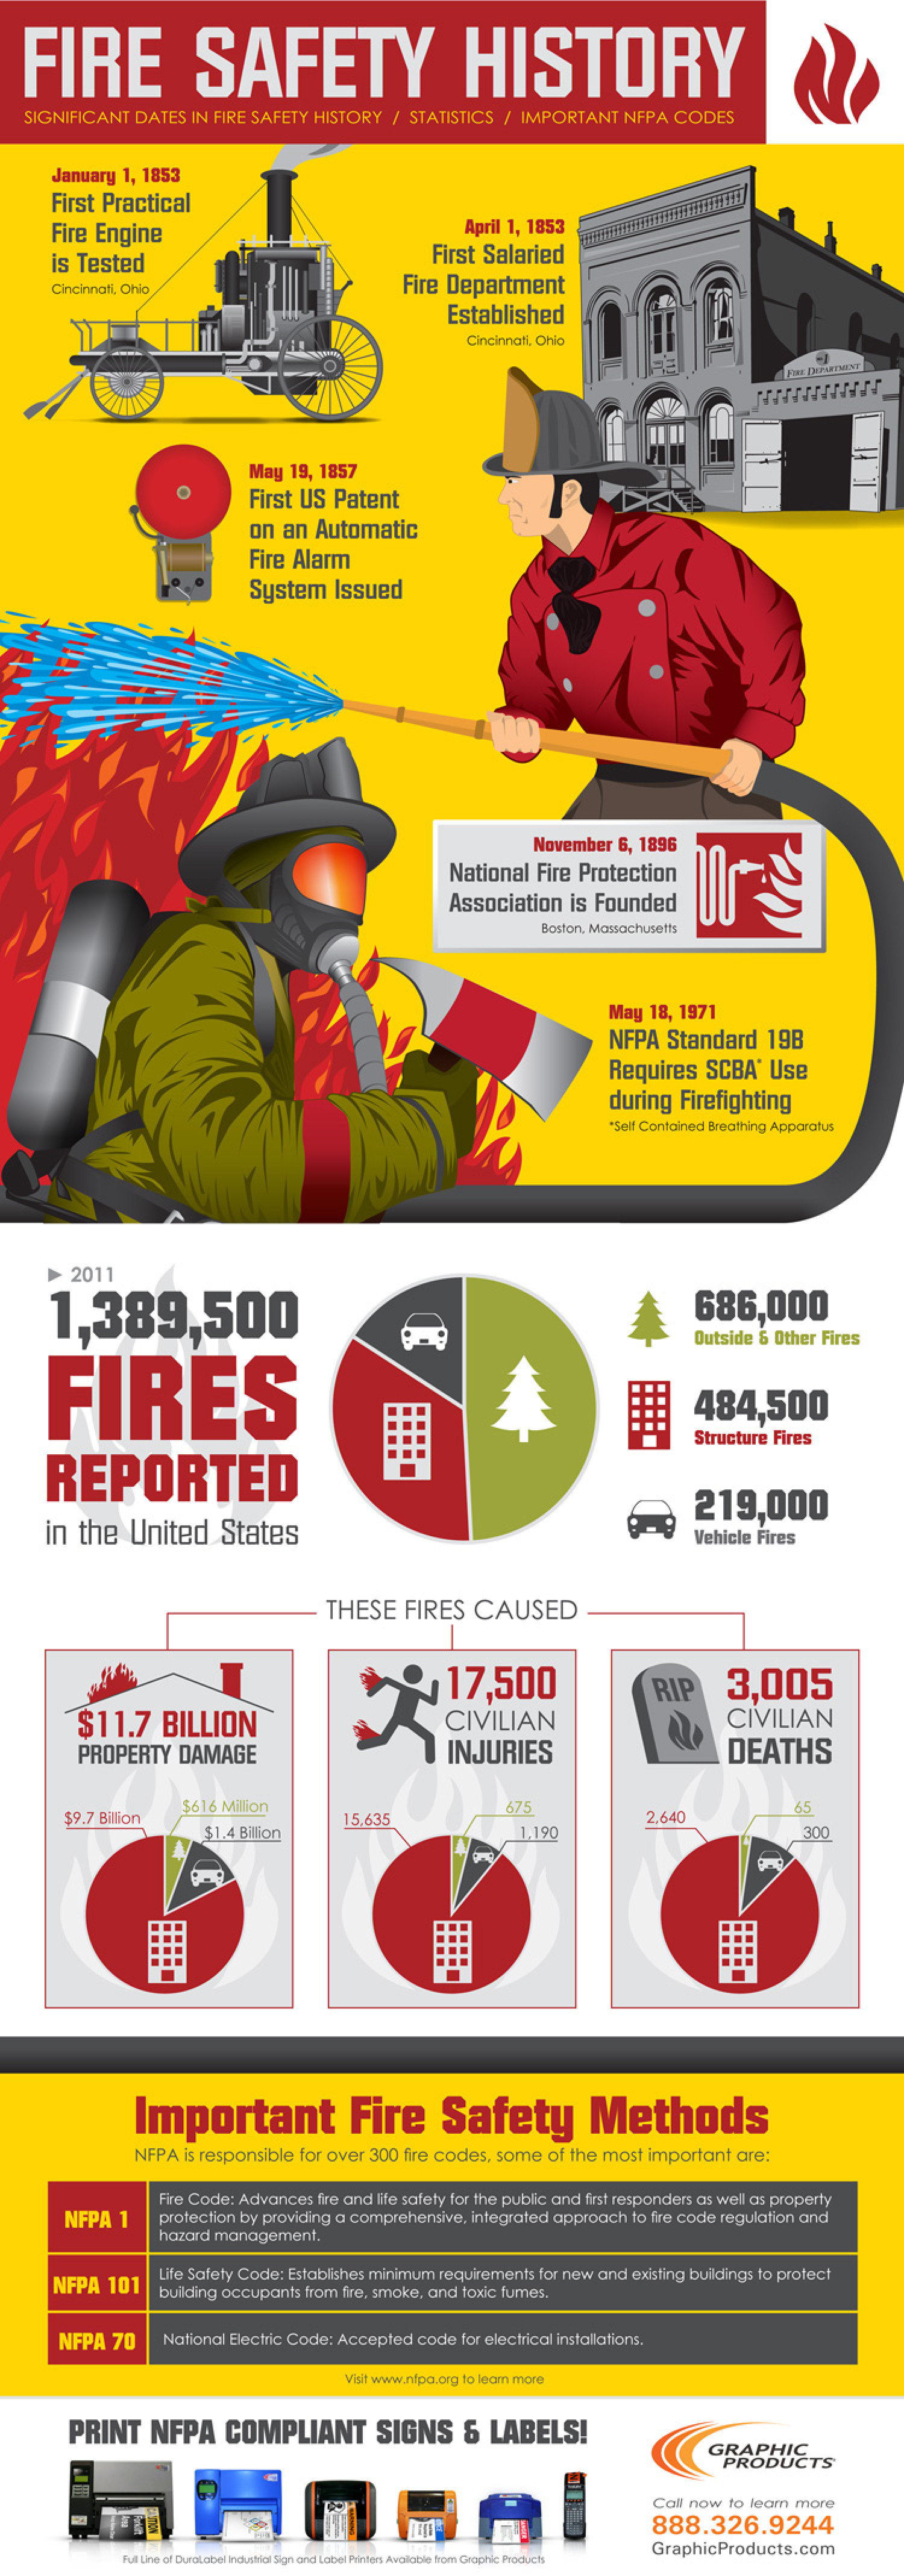 Fire Safety History Infographic